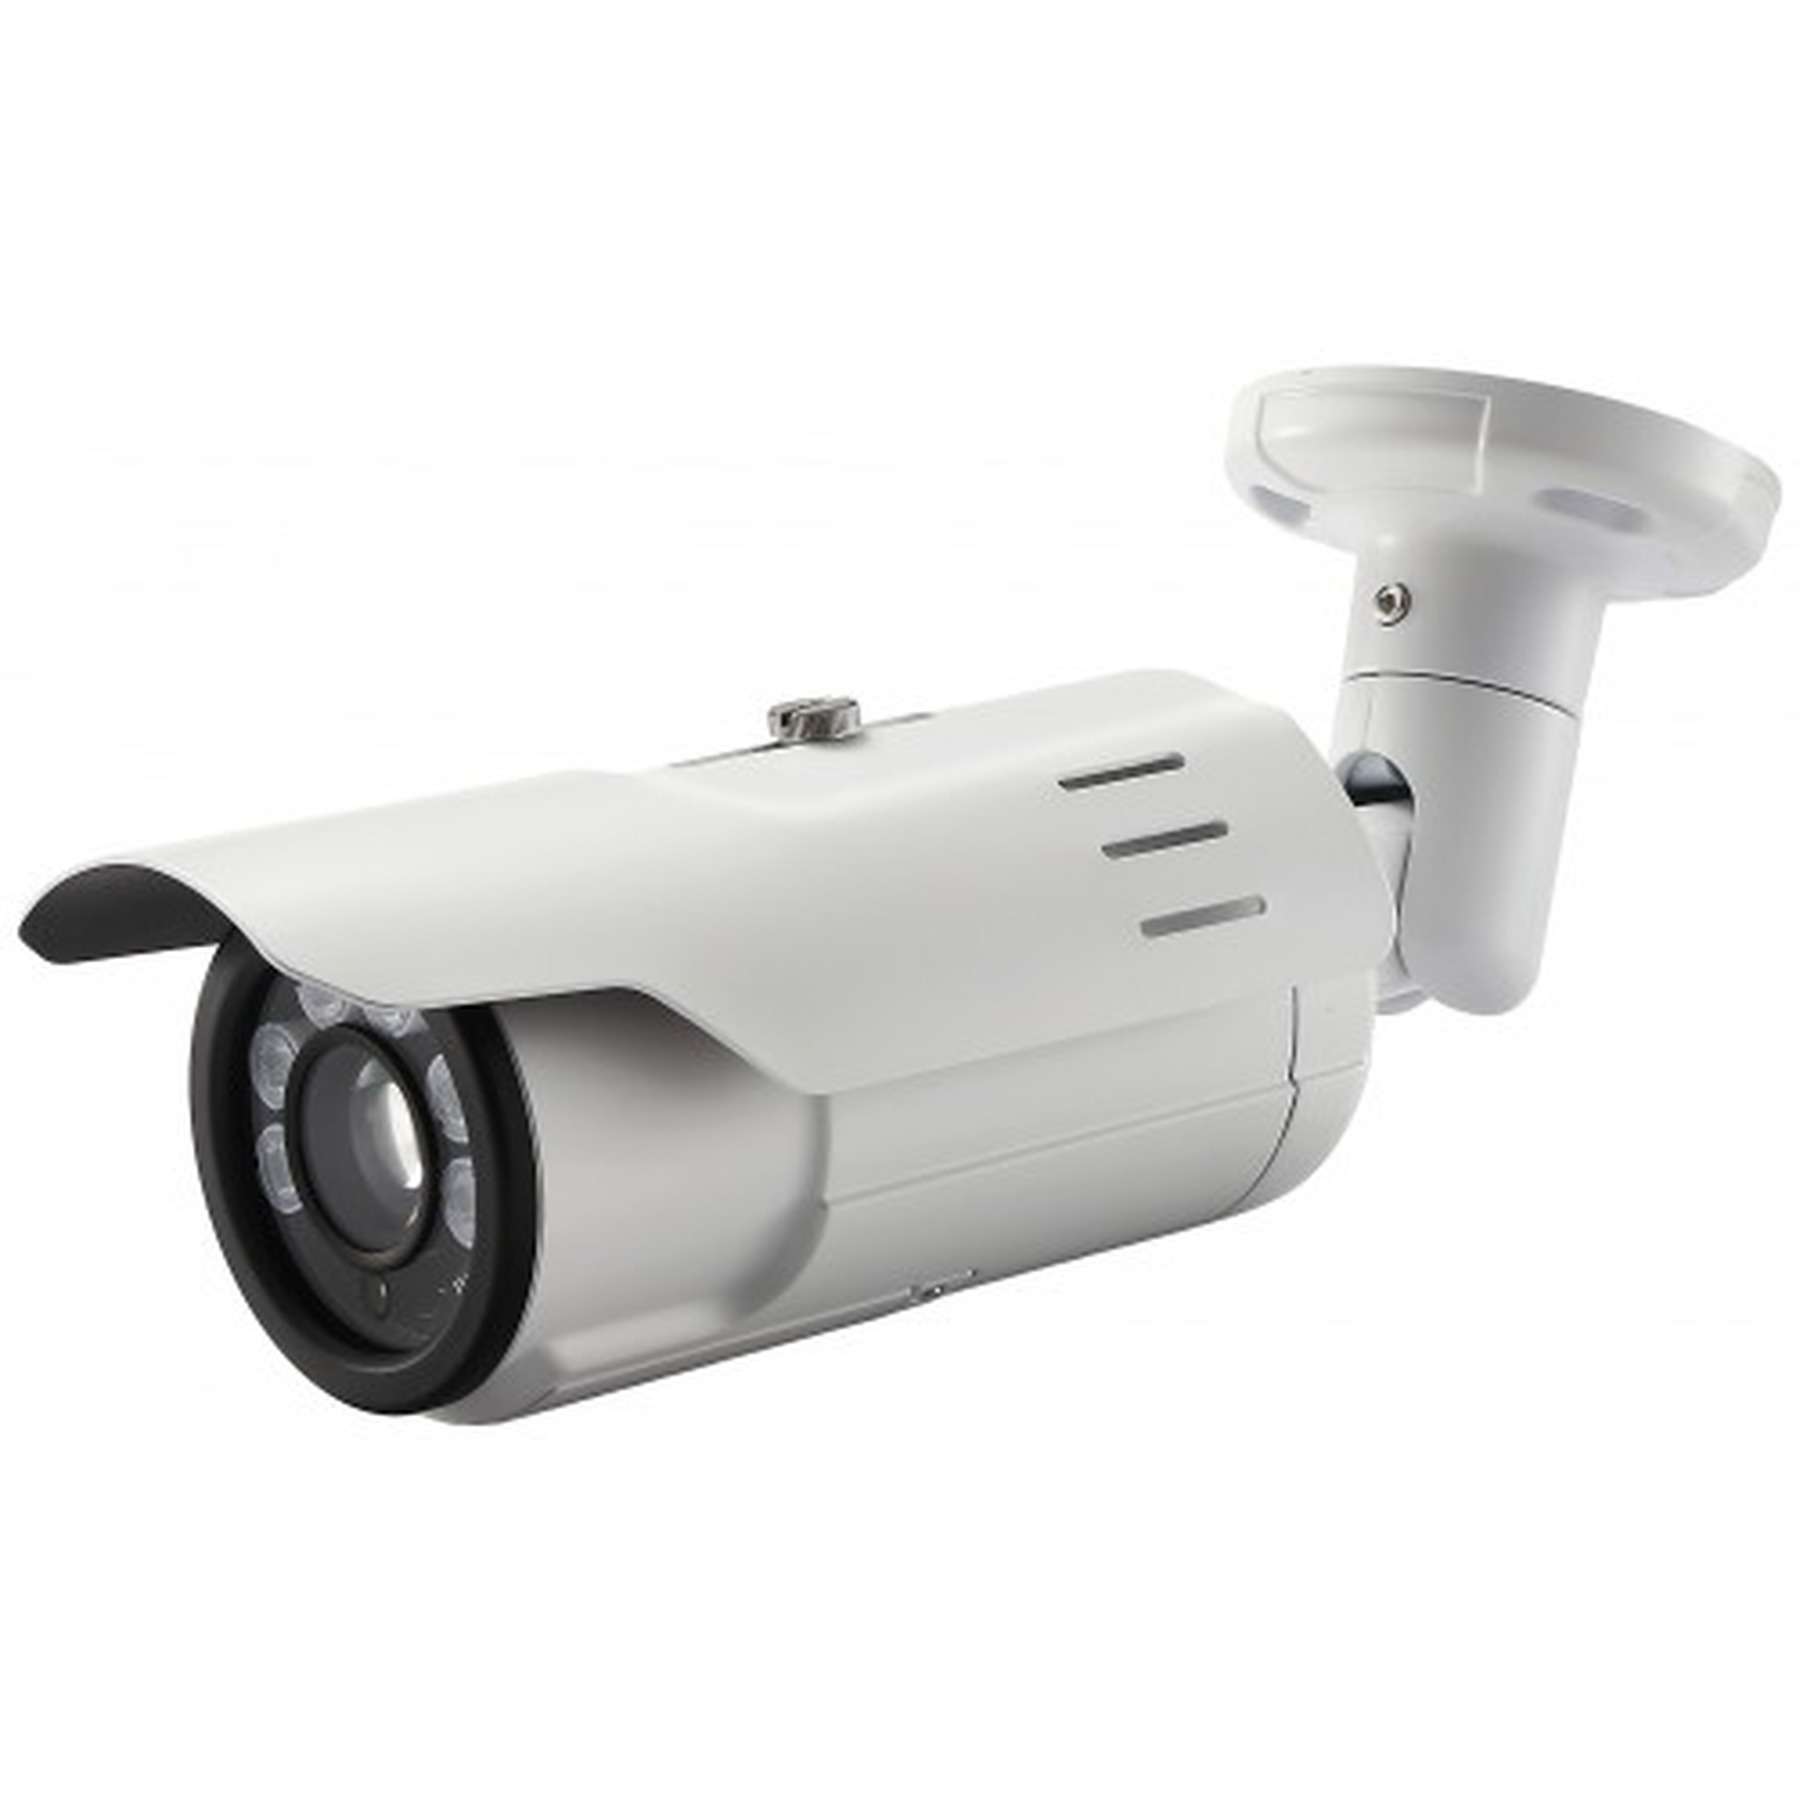 PVCVI-2MP4n1-550BT-MZ Product Zoom